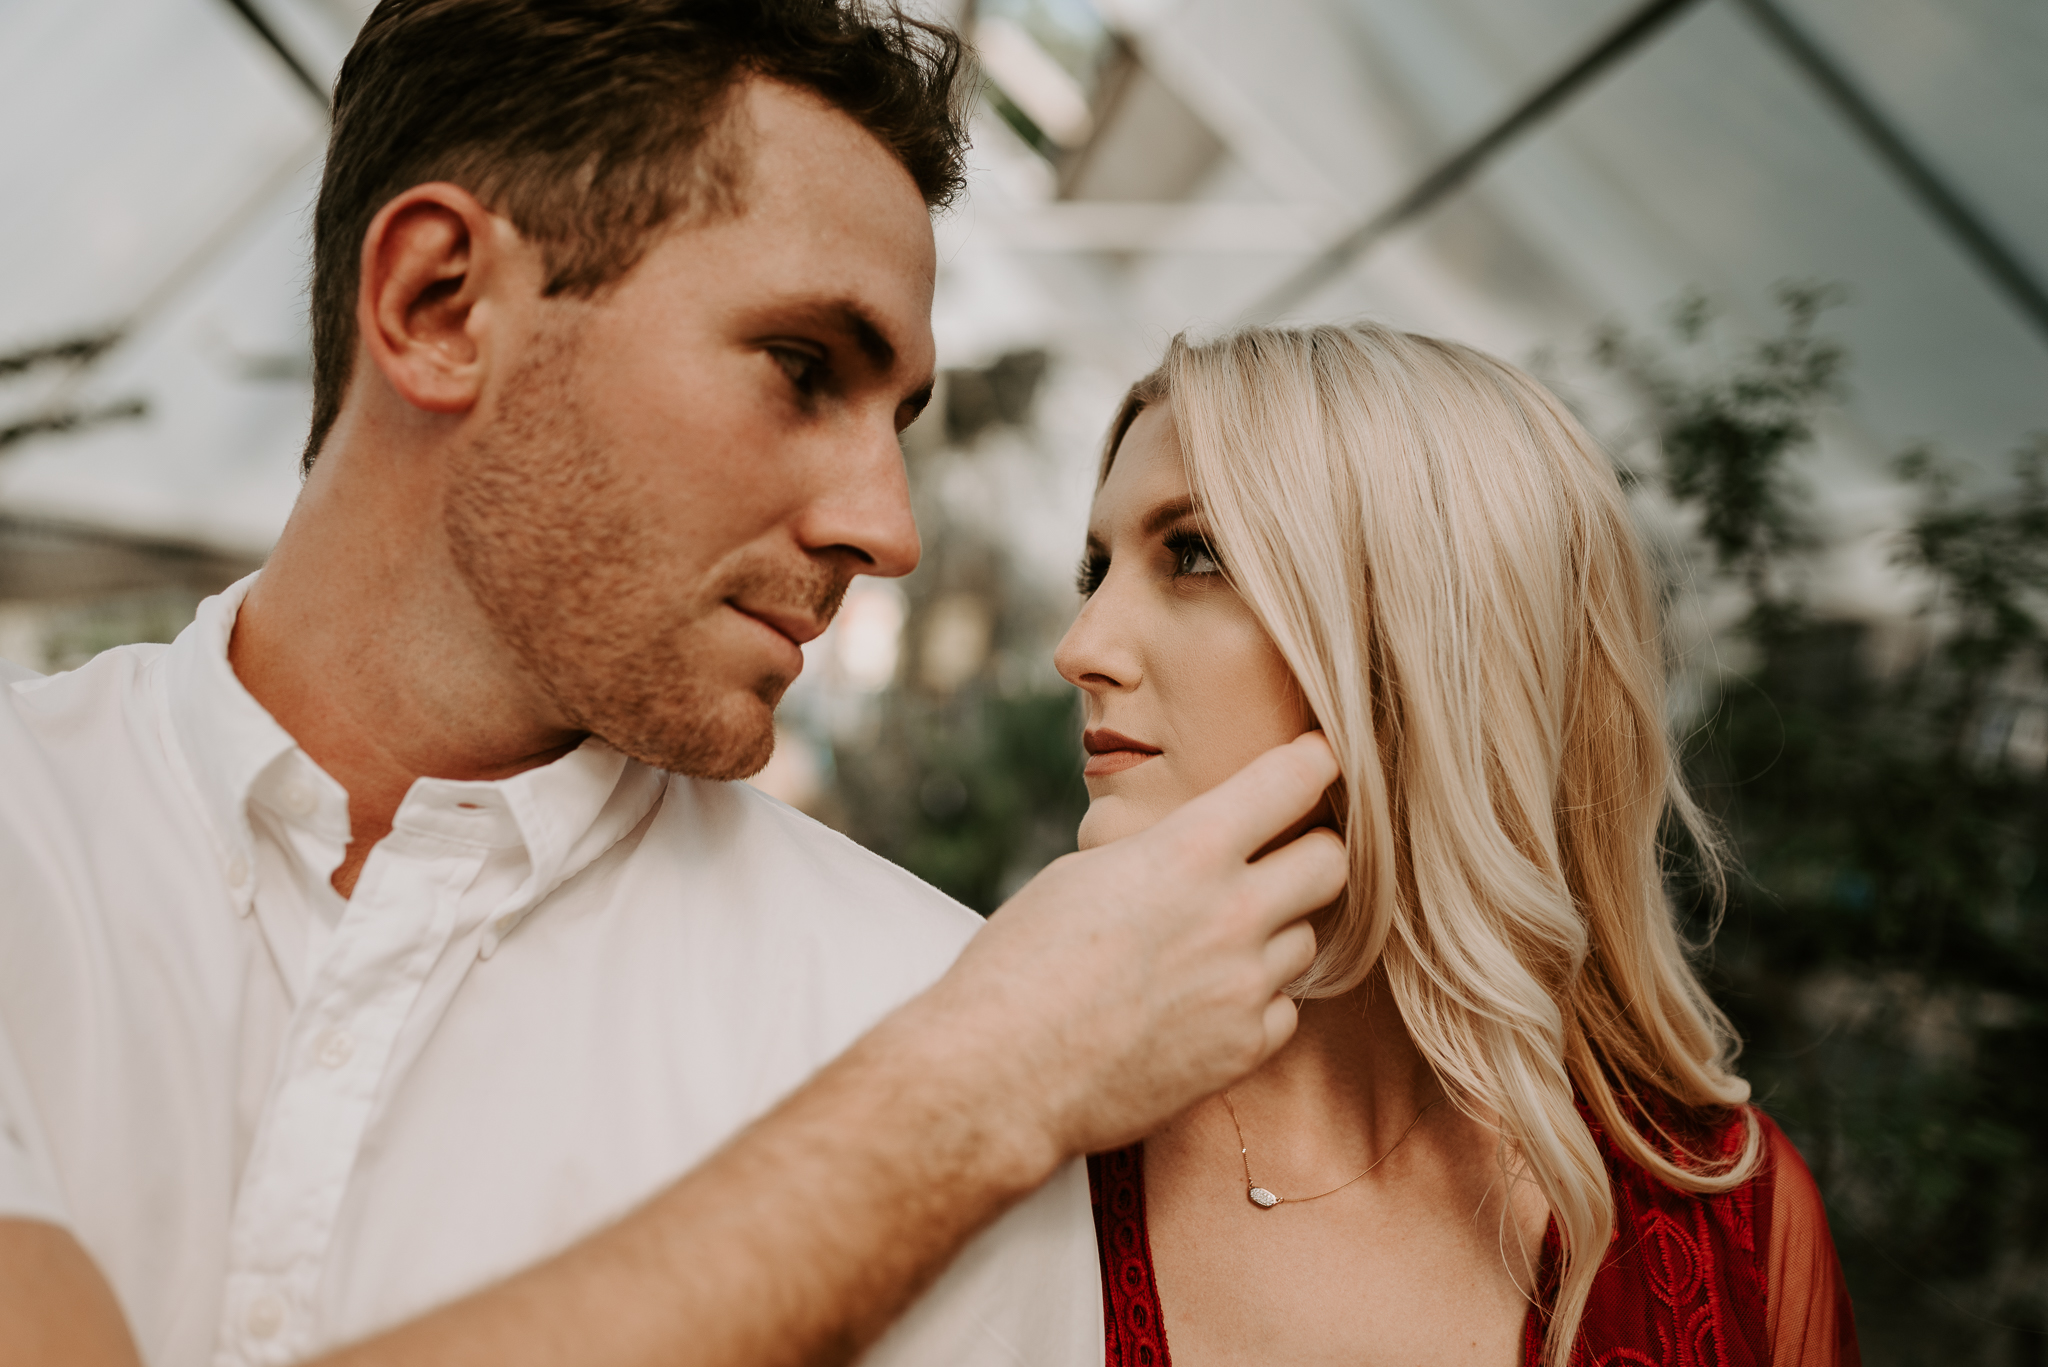 kristen giles photography | texas wedding photographer - austin plant shop engagement session-8-blog.jpg